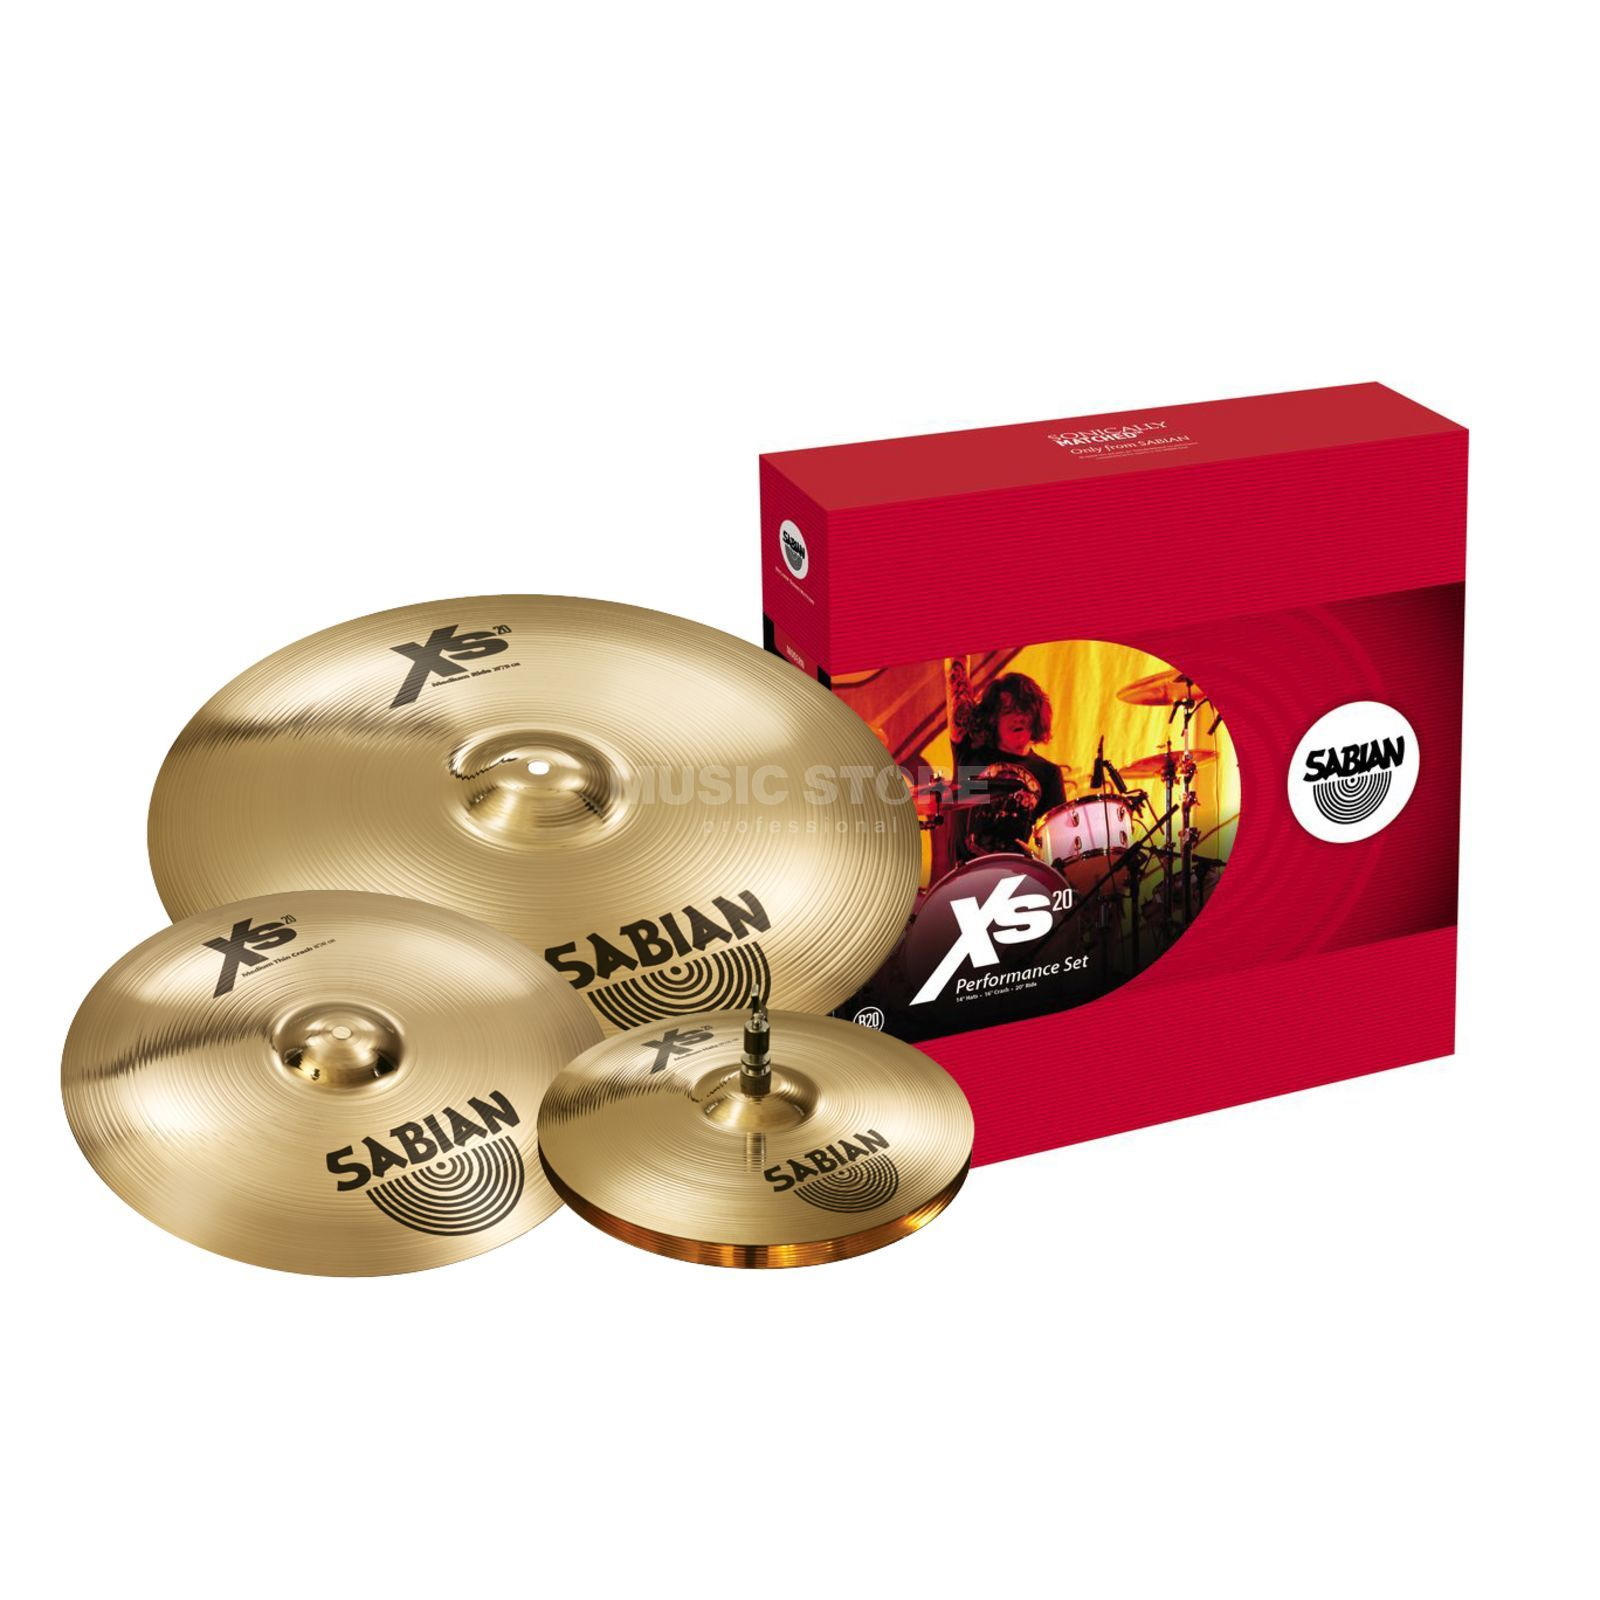 Sabian Set cymbales Performance XS20, finition brillante Image du produit